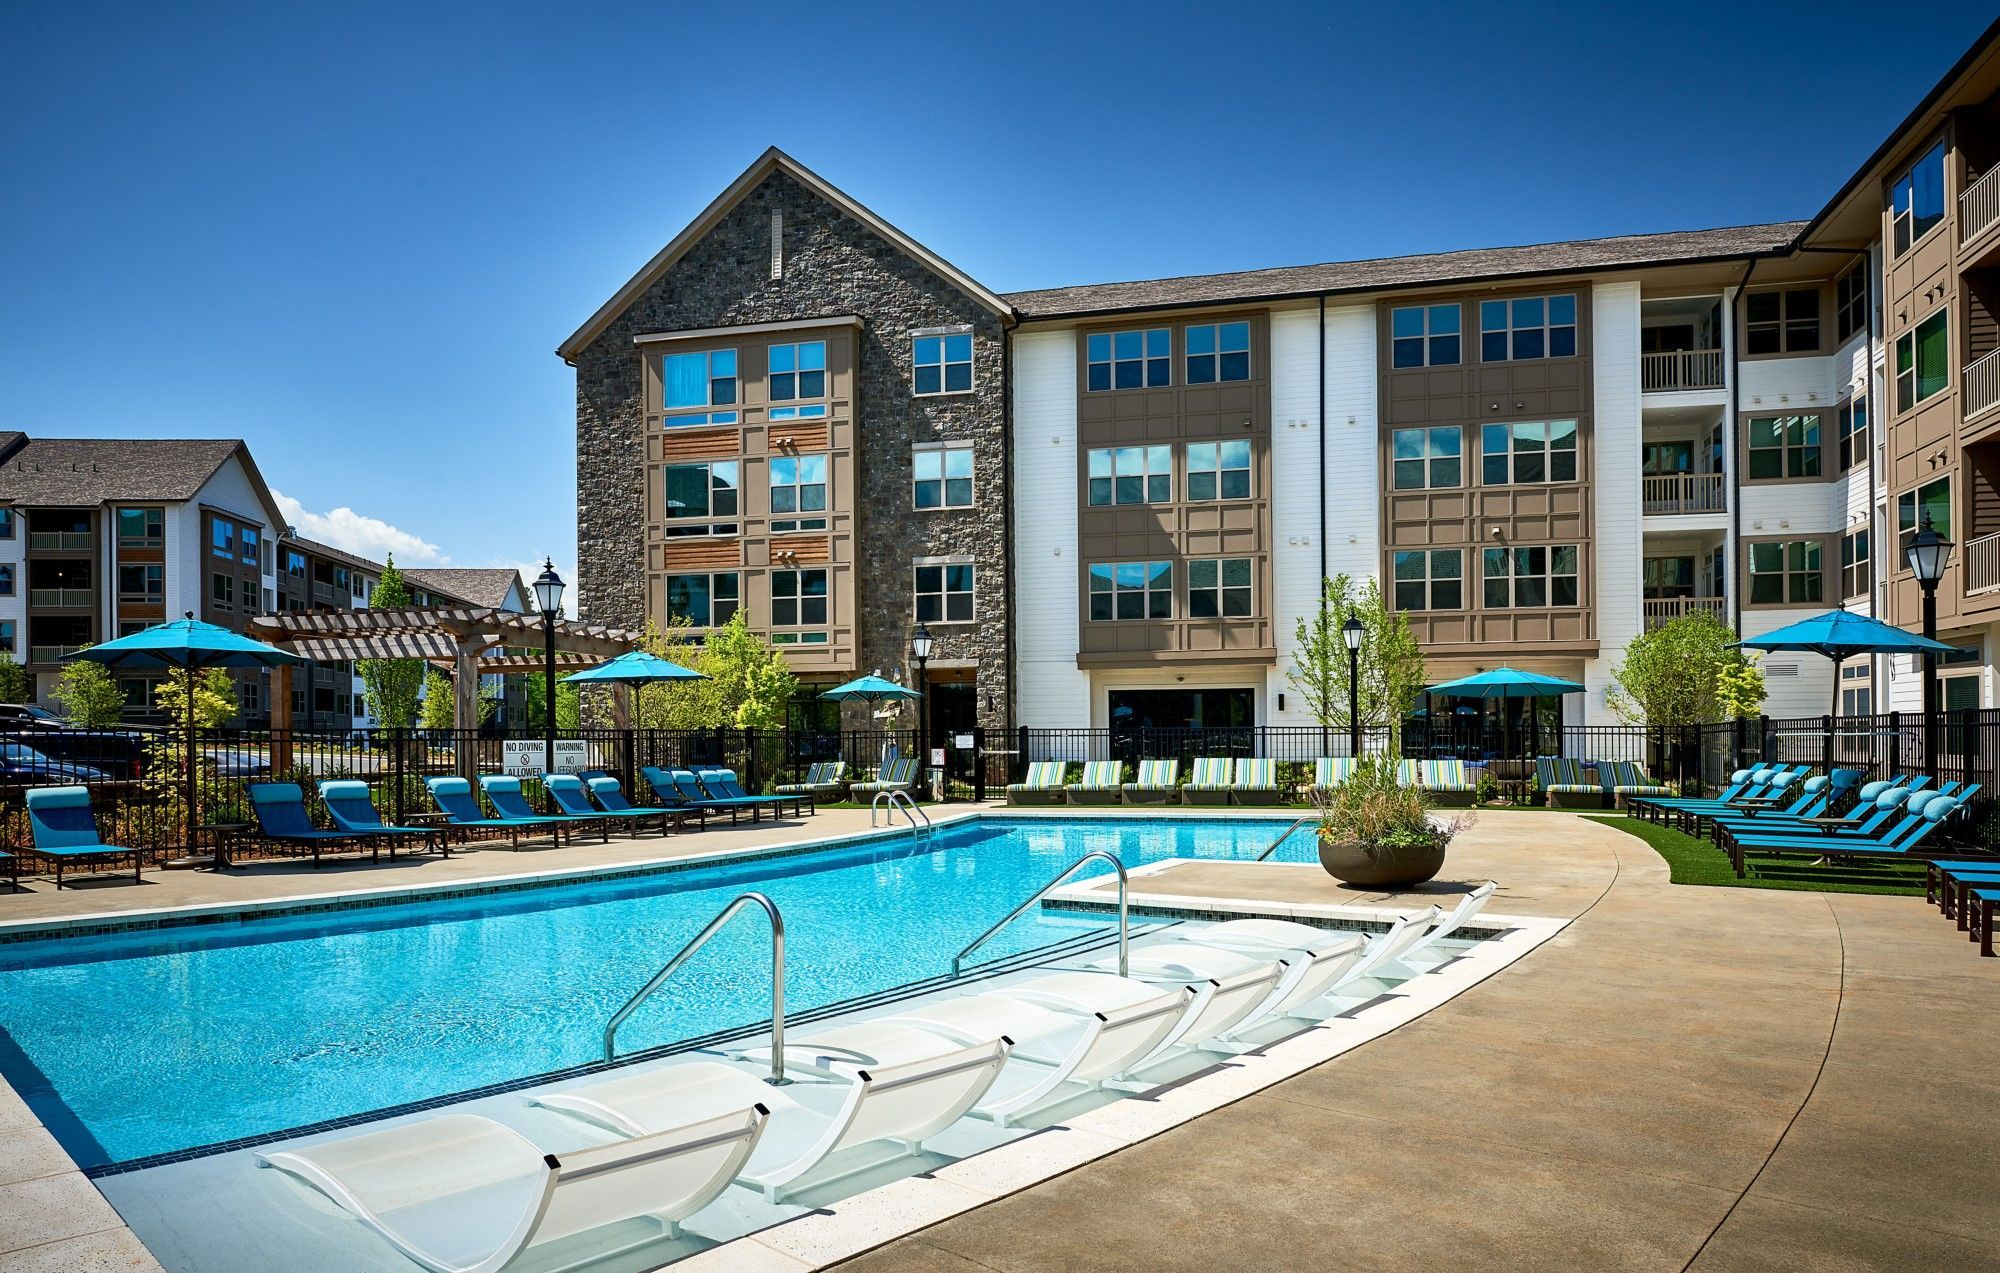 20 Best Apartments For Rent In Belmont, NC (with pictures)!